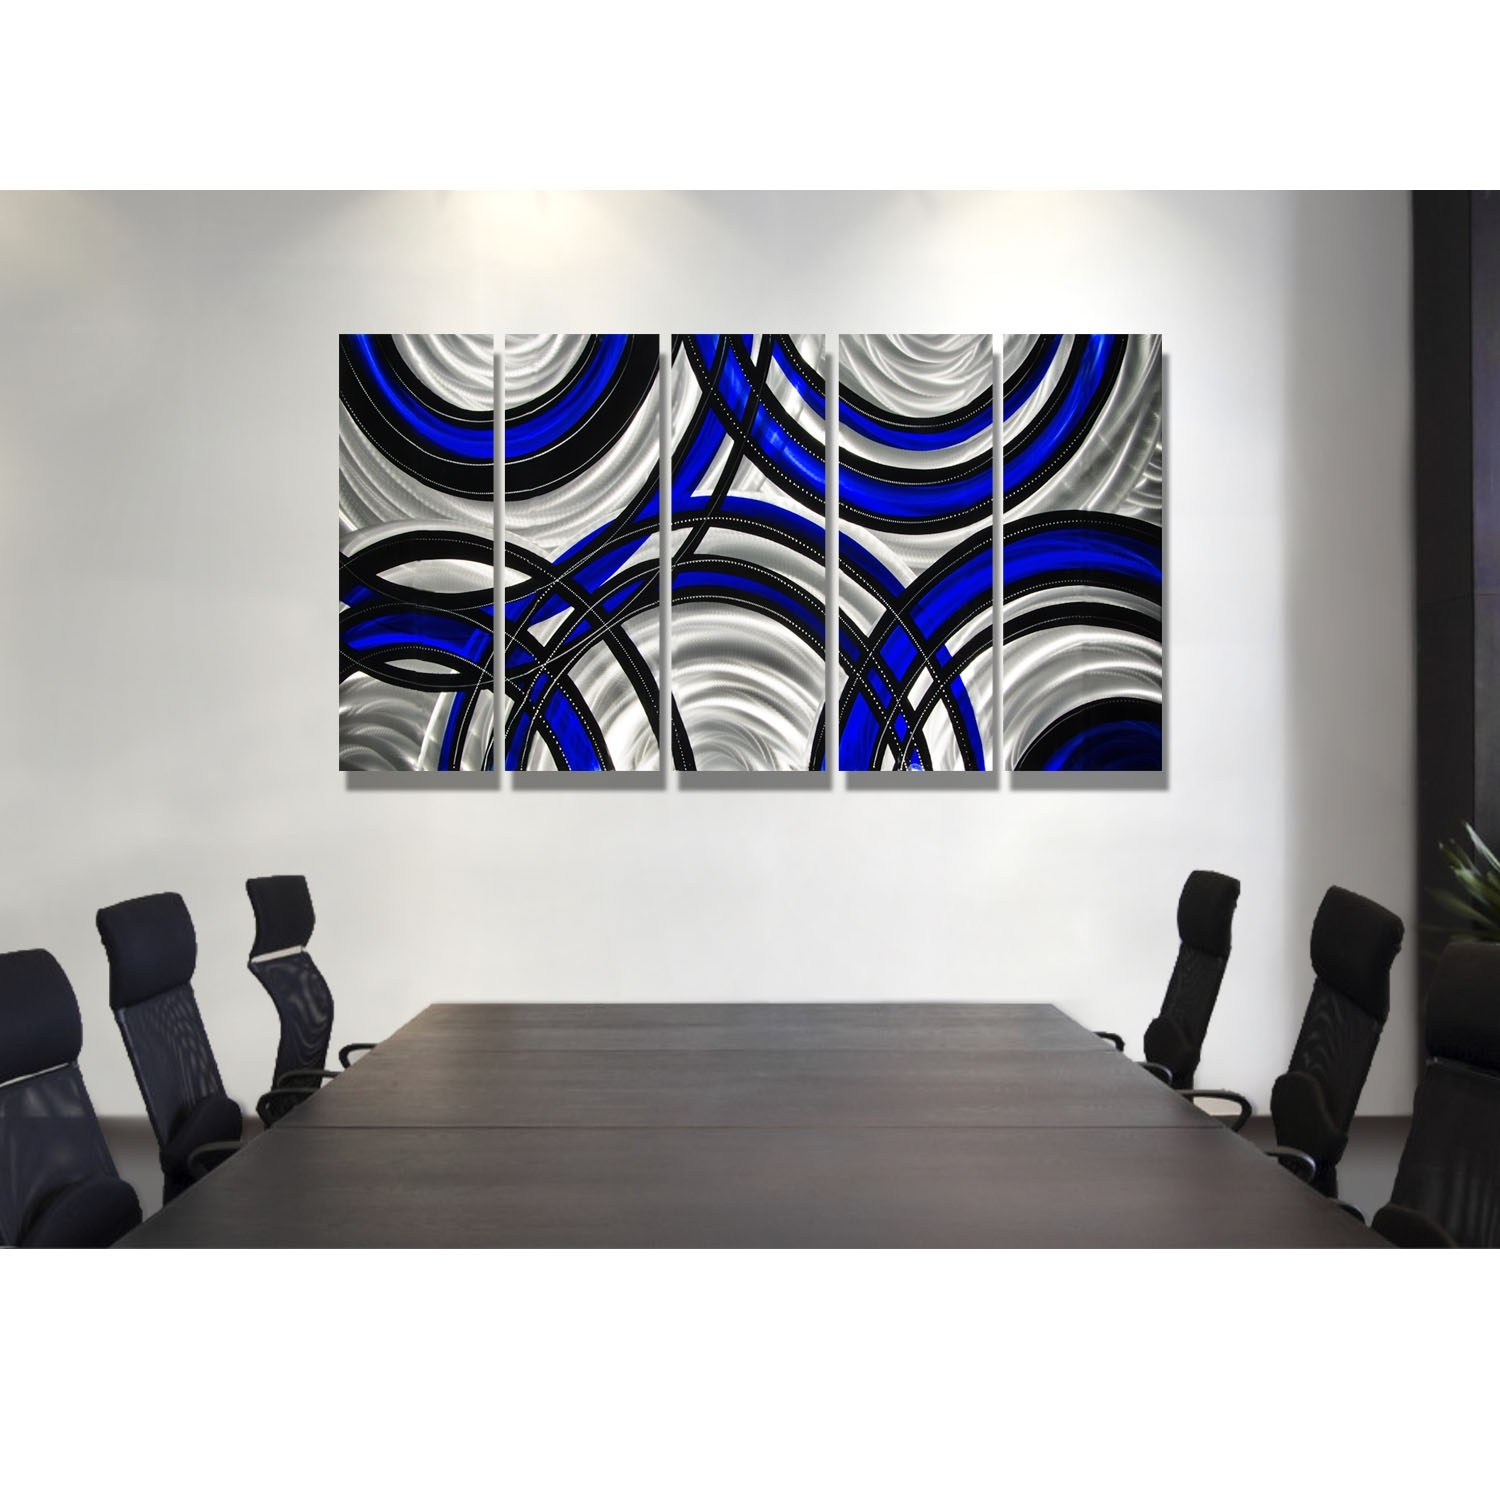 Blue Synergy – Blue, Black And Silver Metal Wall Art – 5 Panel Wall Inside Most Popular Black Wall Art (View 10 of 20)